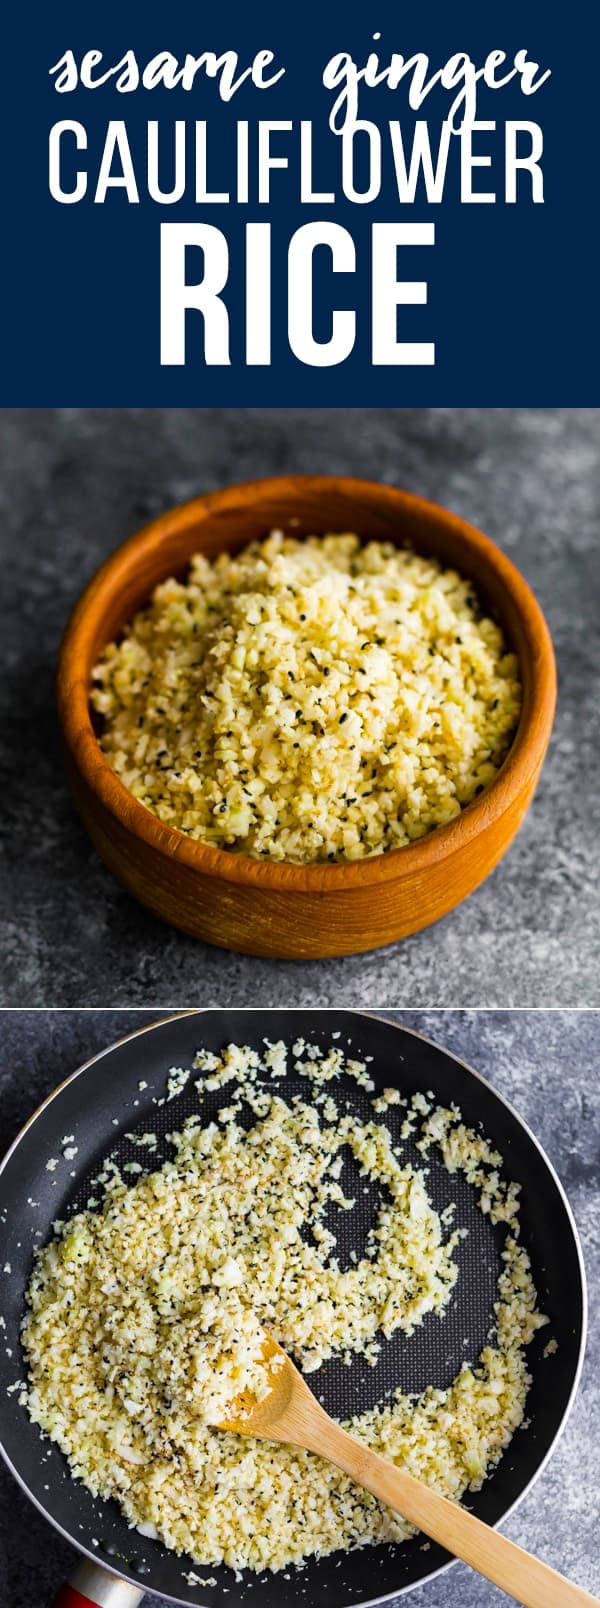 Sesame ginger cauliflower rice is a simple way to add extra flavor to your cauliflower rice! Perfect for an easy low carb side dish.